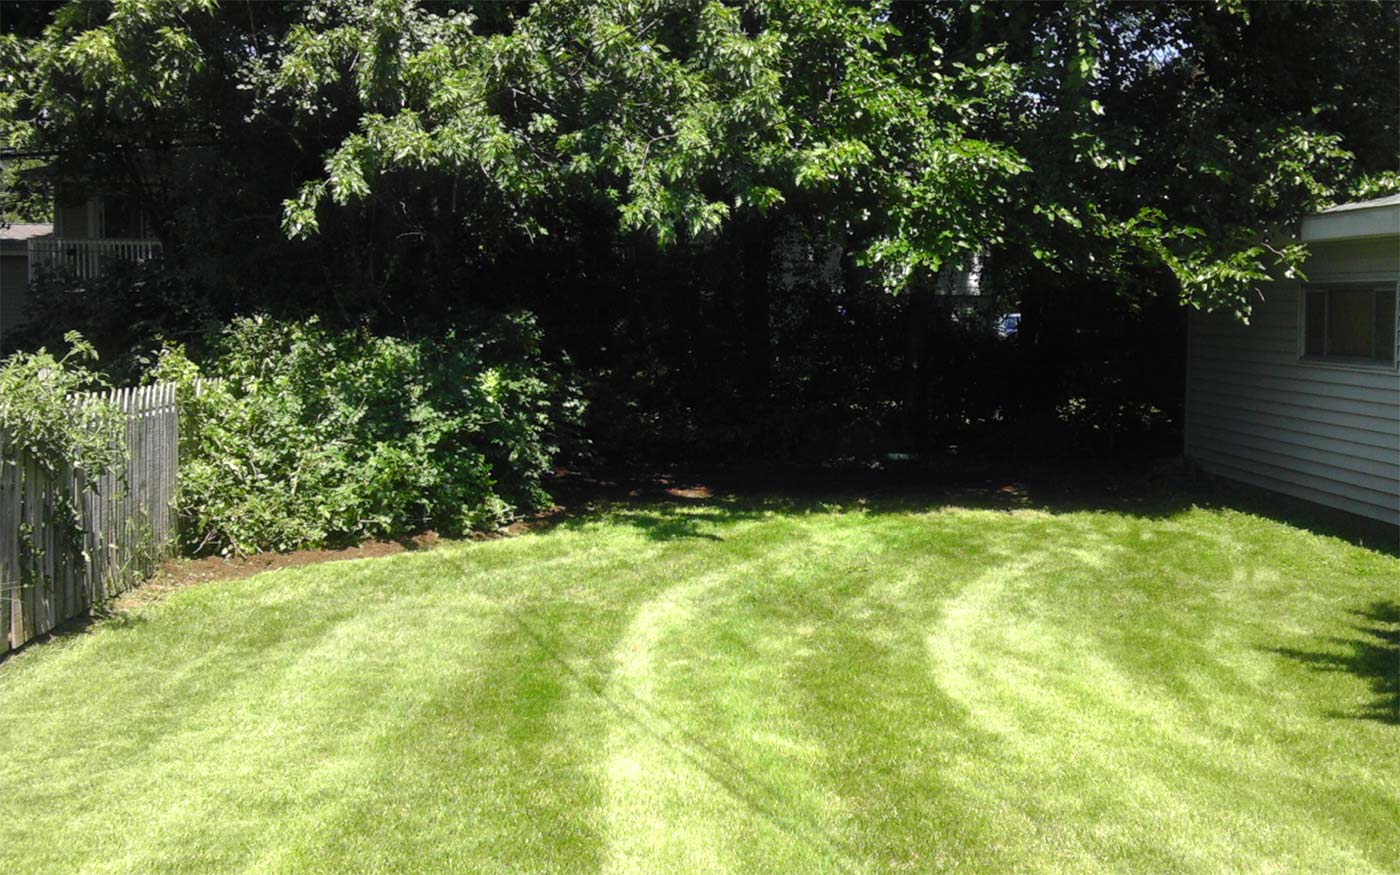 Landscaping Photo Gallery Local Lawn Care & Landscaping